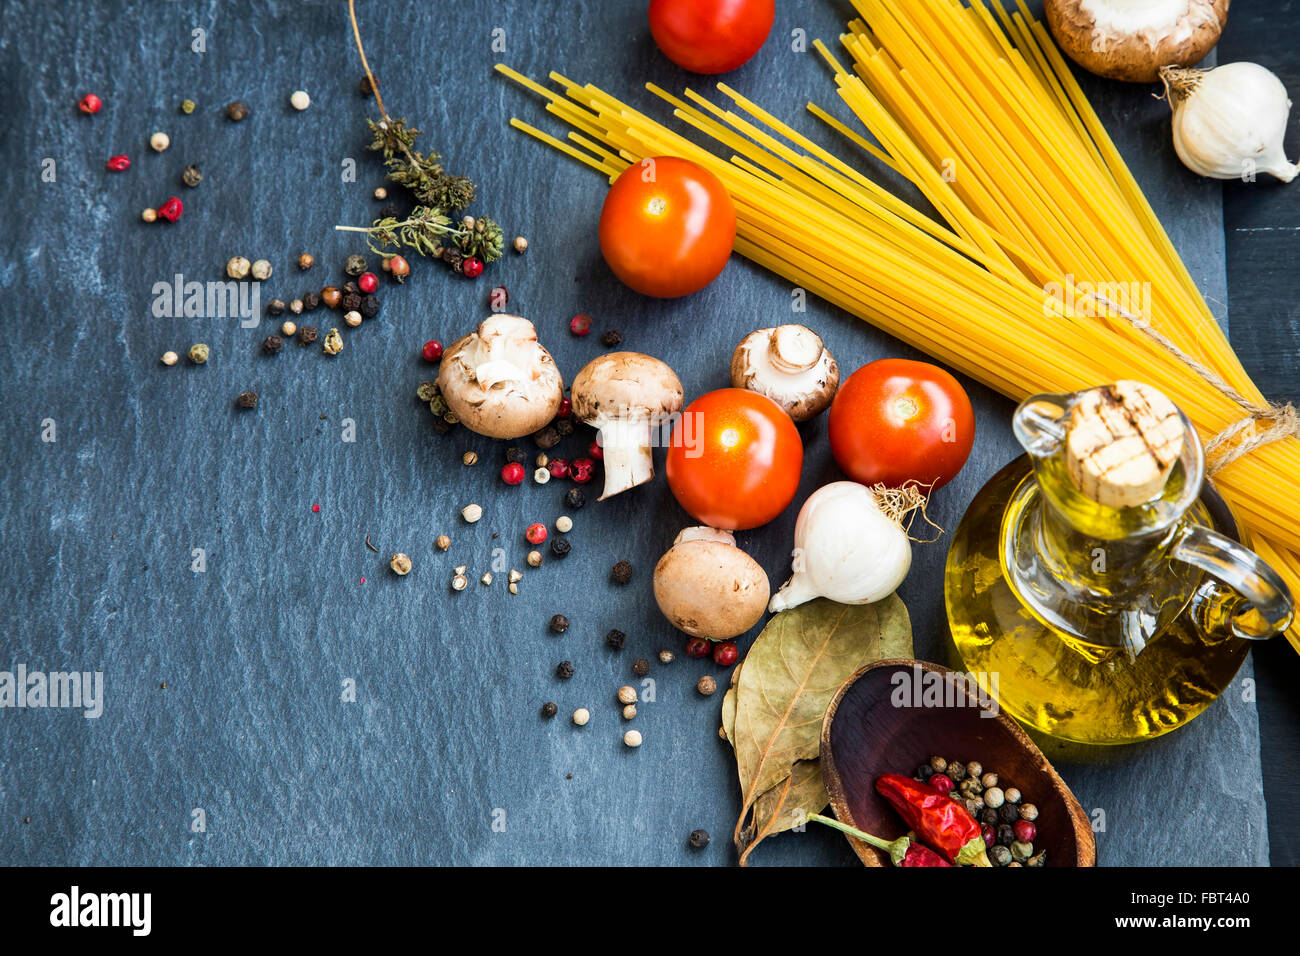 Italian meal ingredients with pasta,spices,tomatoes,olive oil,mushrooms Stock Photo